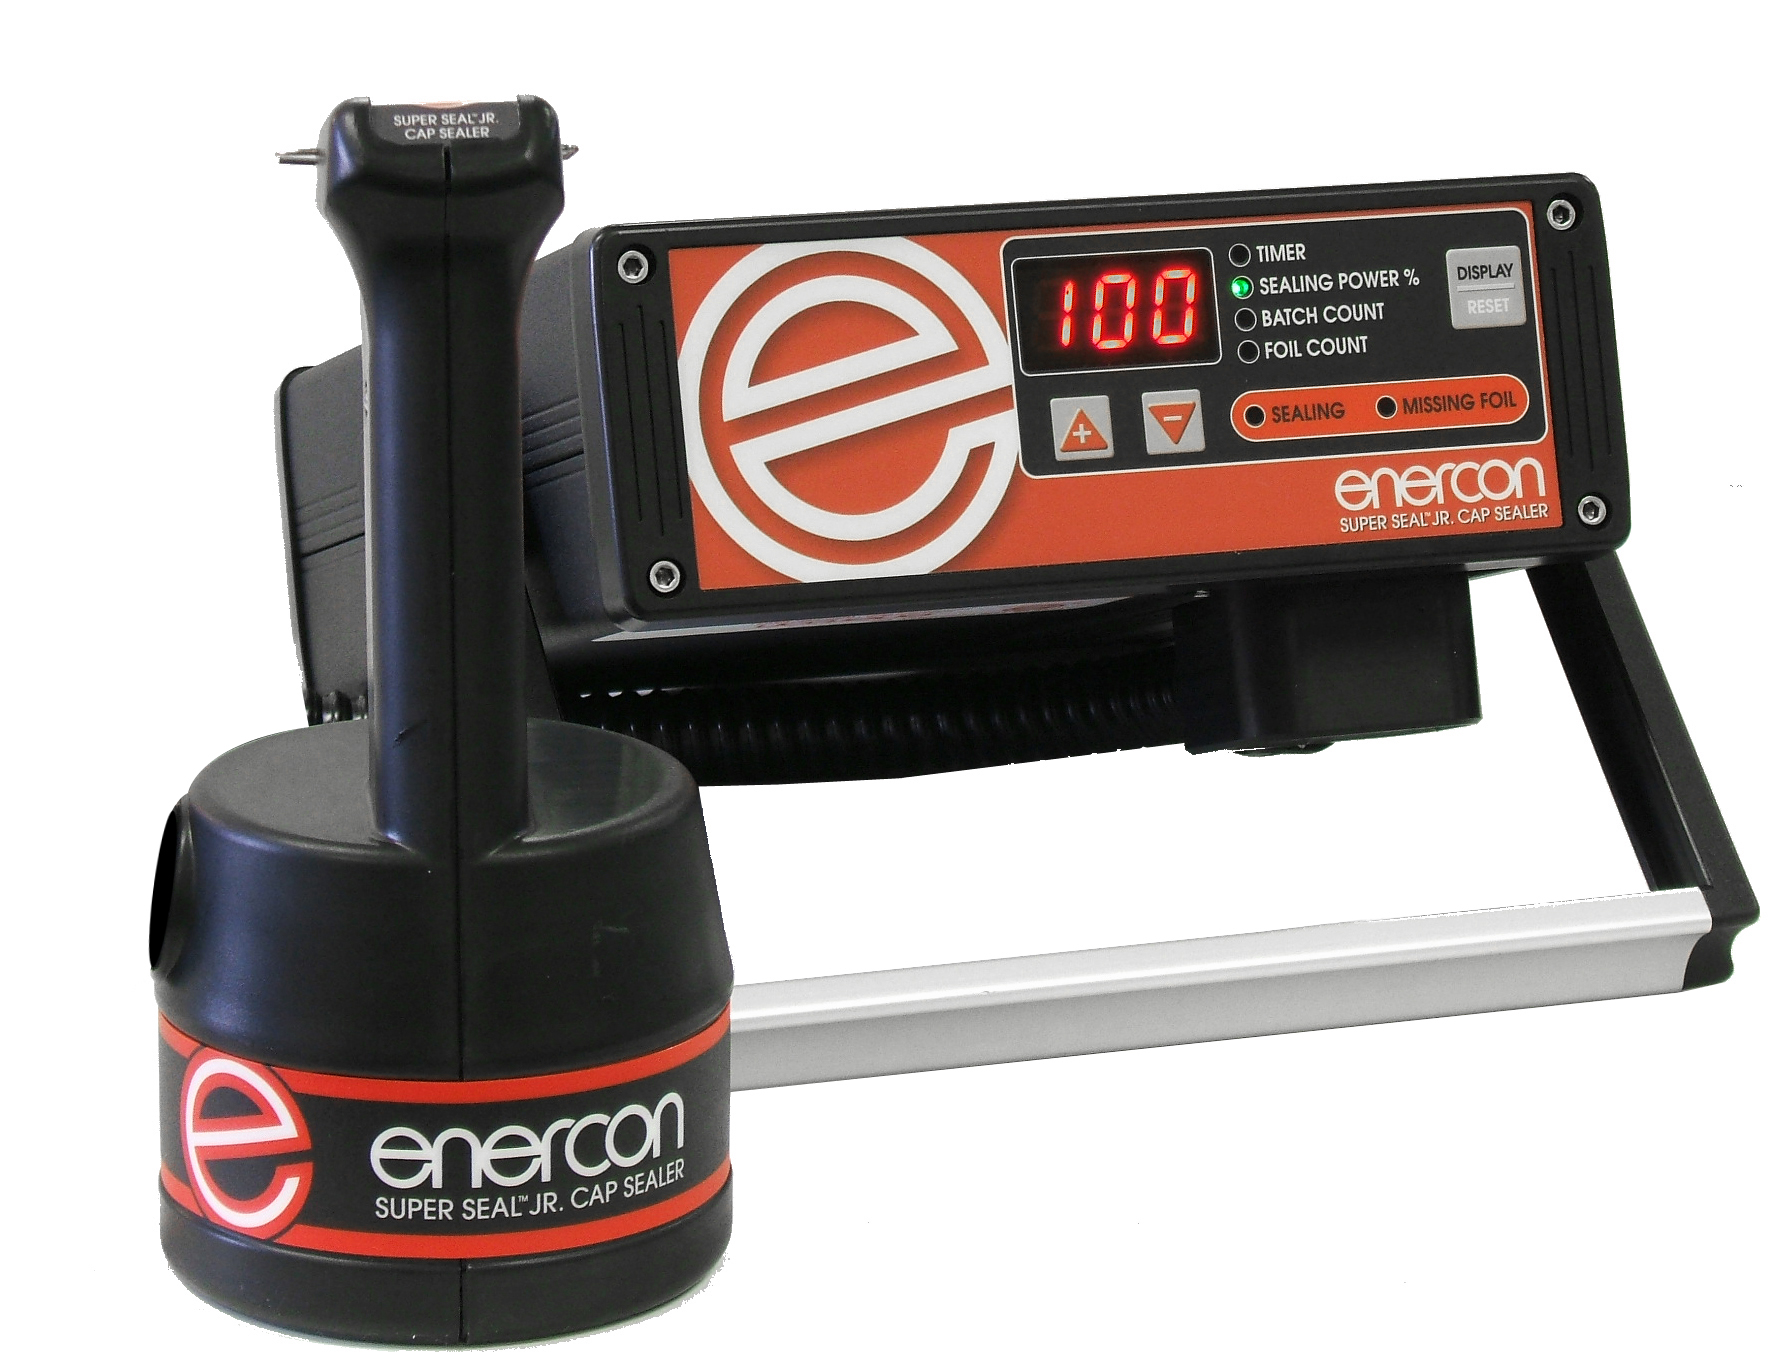 Enercon Super Seal JR Induction Sealer